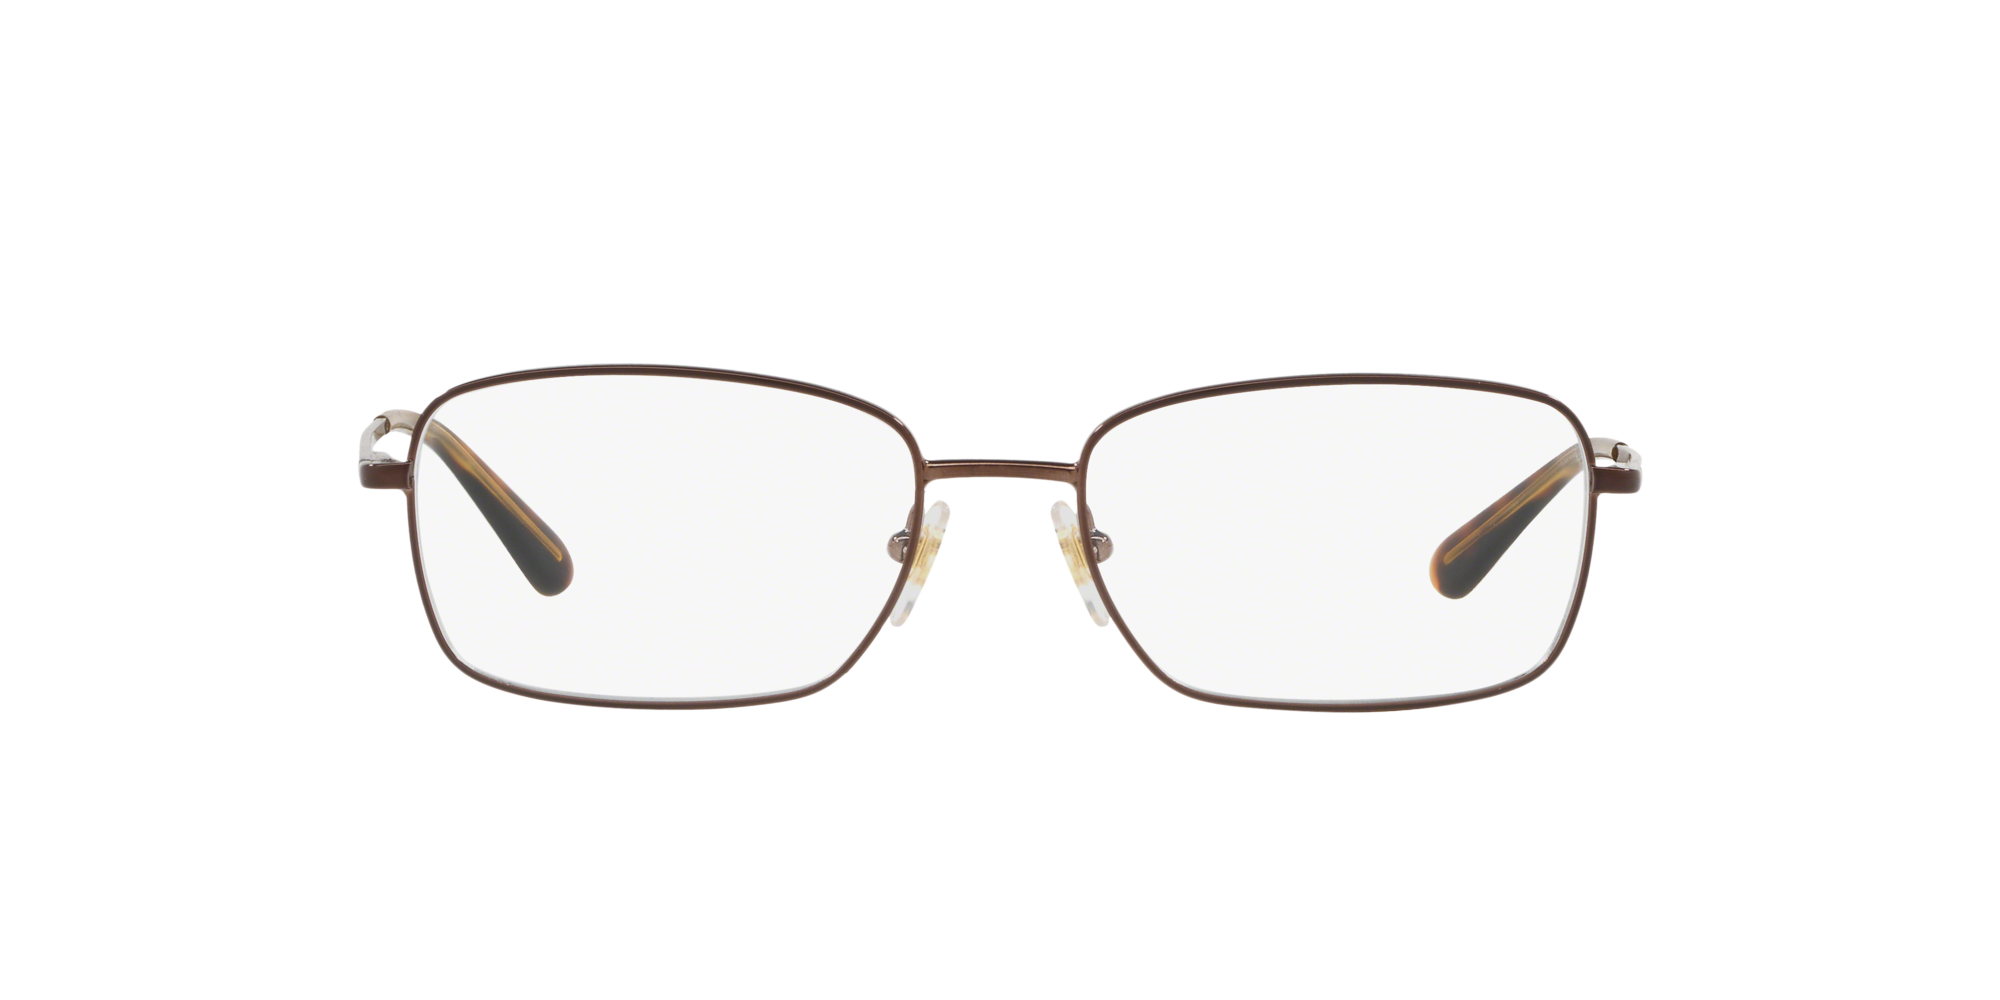 Image for SF2291 from LensCrafters   Glasses, Prescription Glasses Online, Eyewear